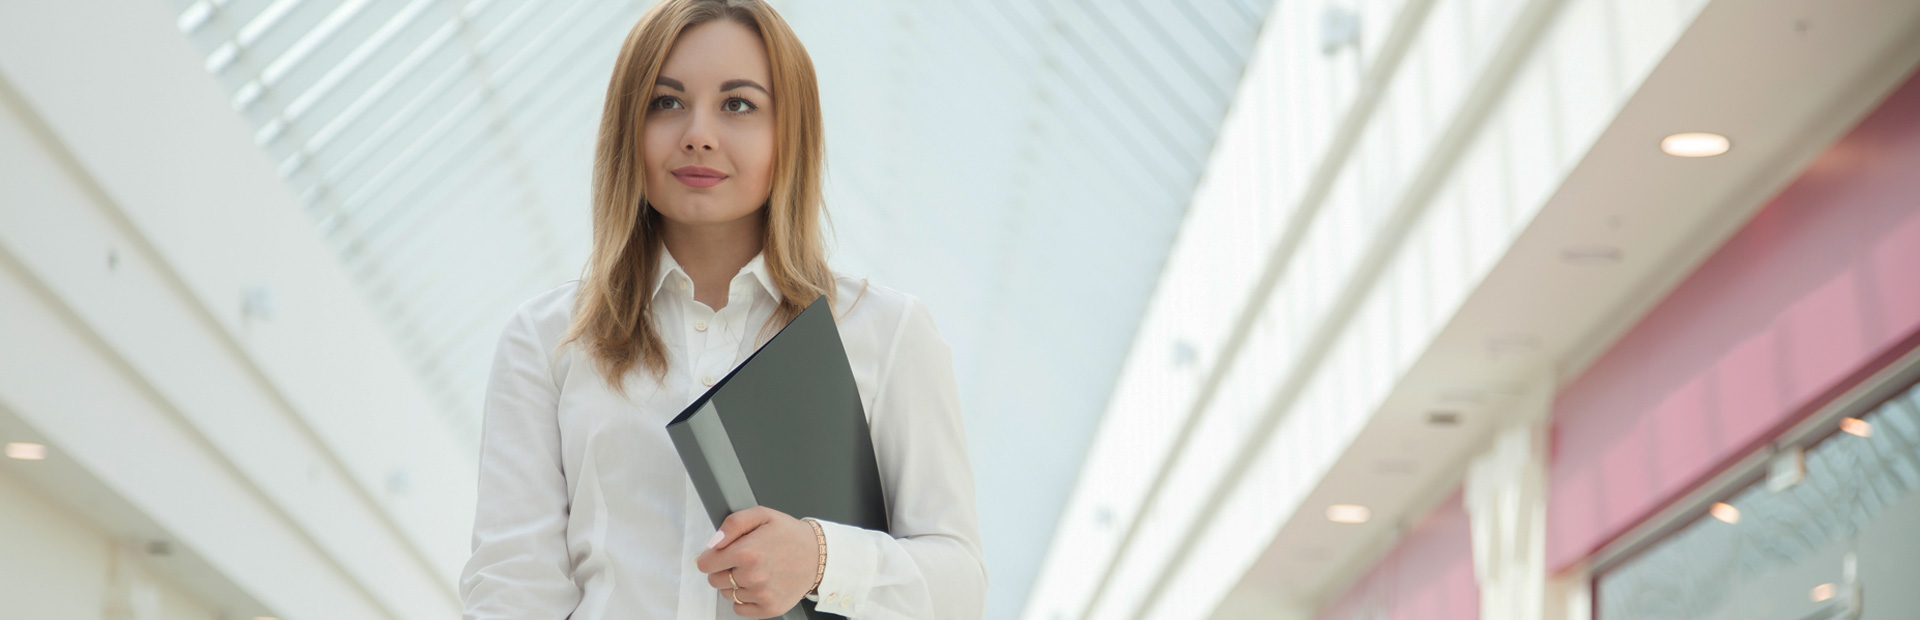 Business Woman Consultant